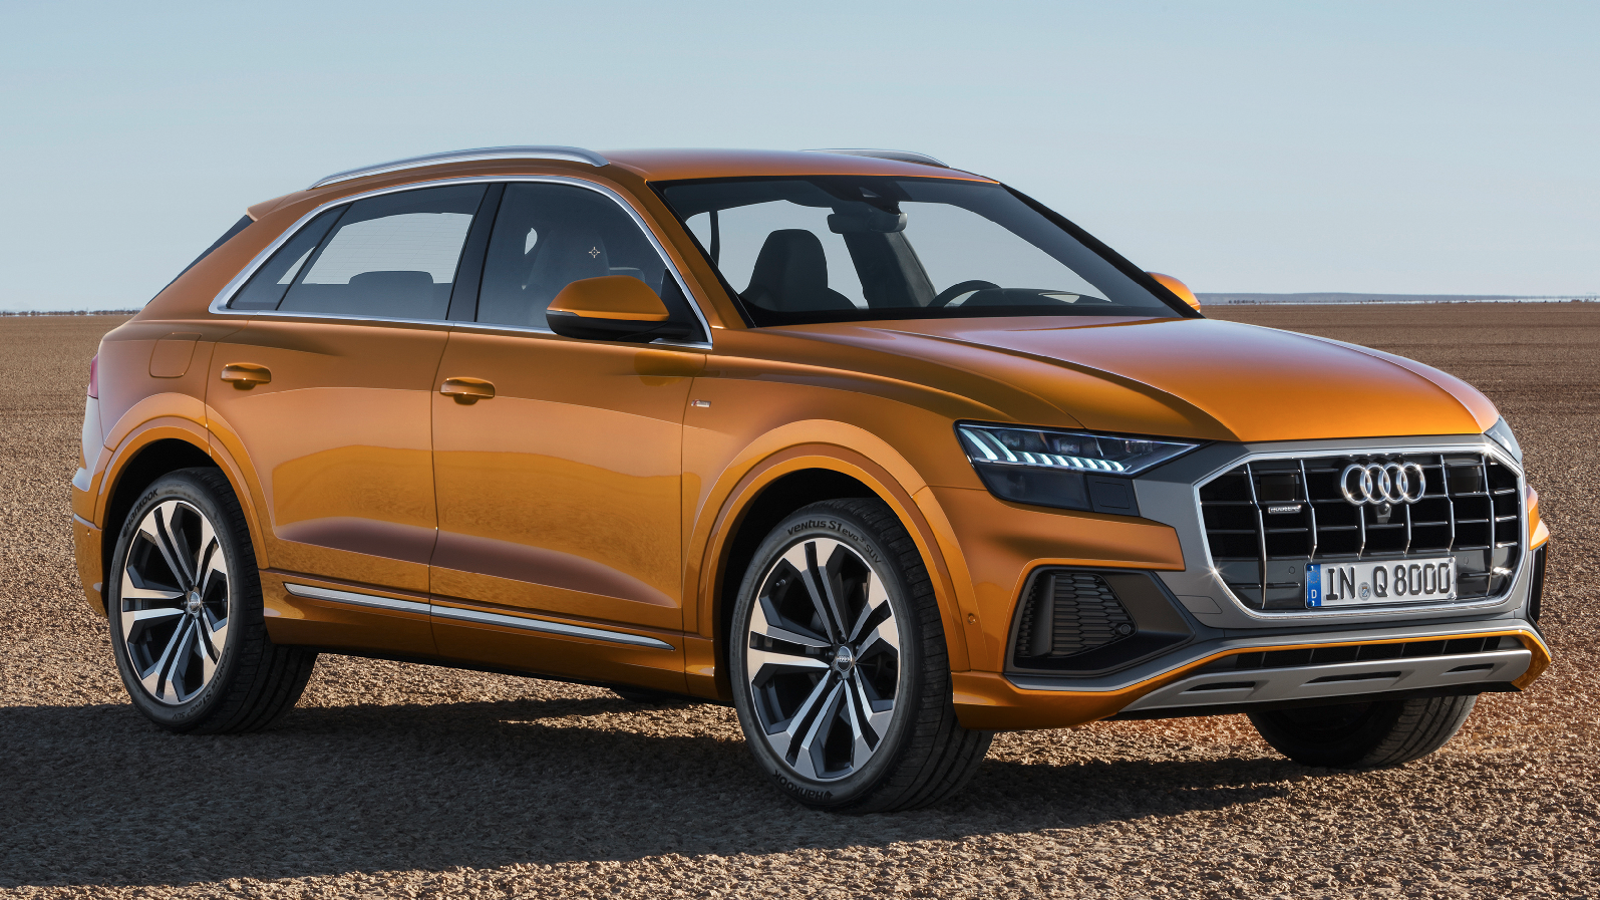 The 2019 Audi Q8 Boldly Shows Audi's Willingness To Make A